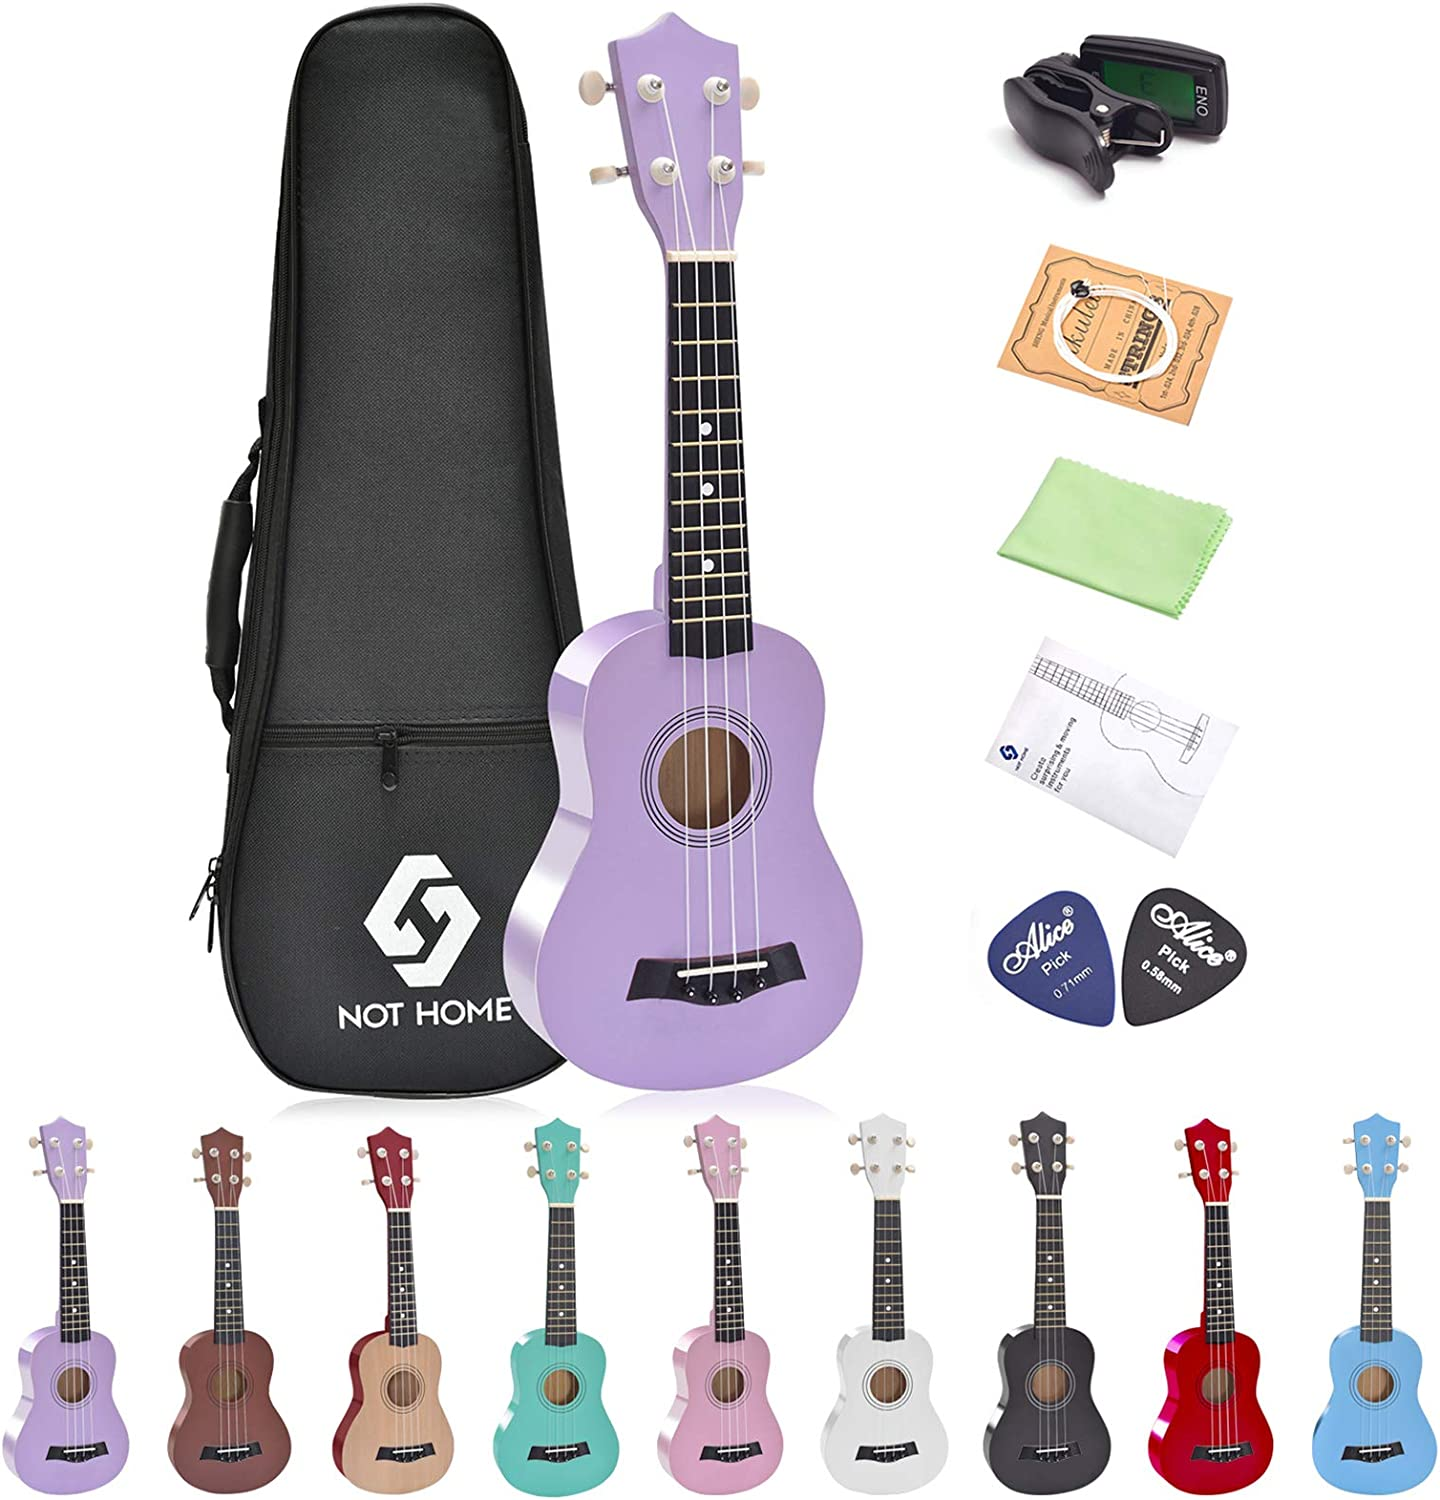 Chords Card Clip-On Tuner Strap Extra Strings 21 Soprano, Purple Polishing Cloth Fret Stickers Plectrum Winzz Soprano Ukulele Starter Kit For Beginners with Bag